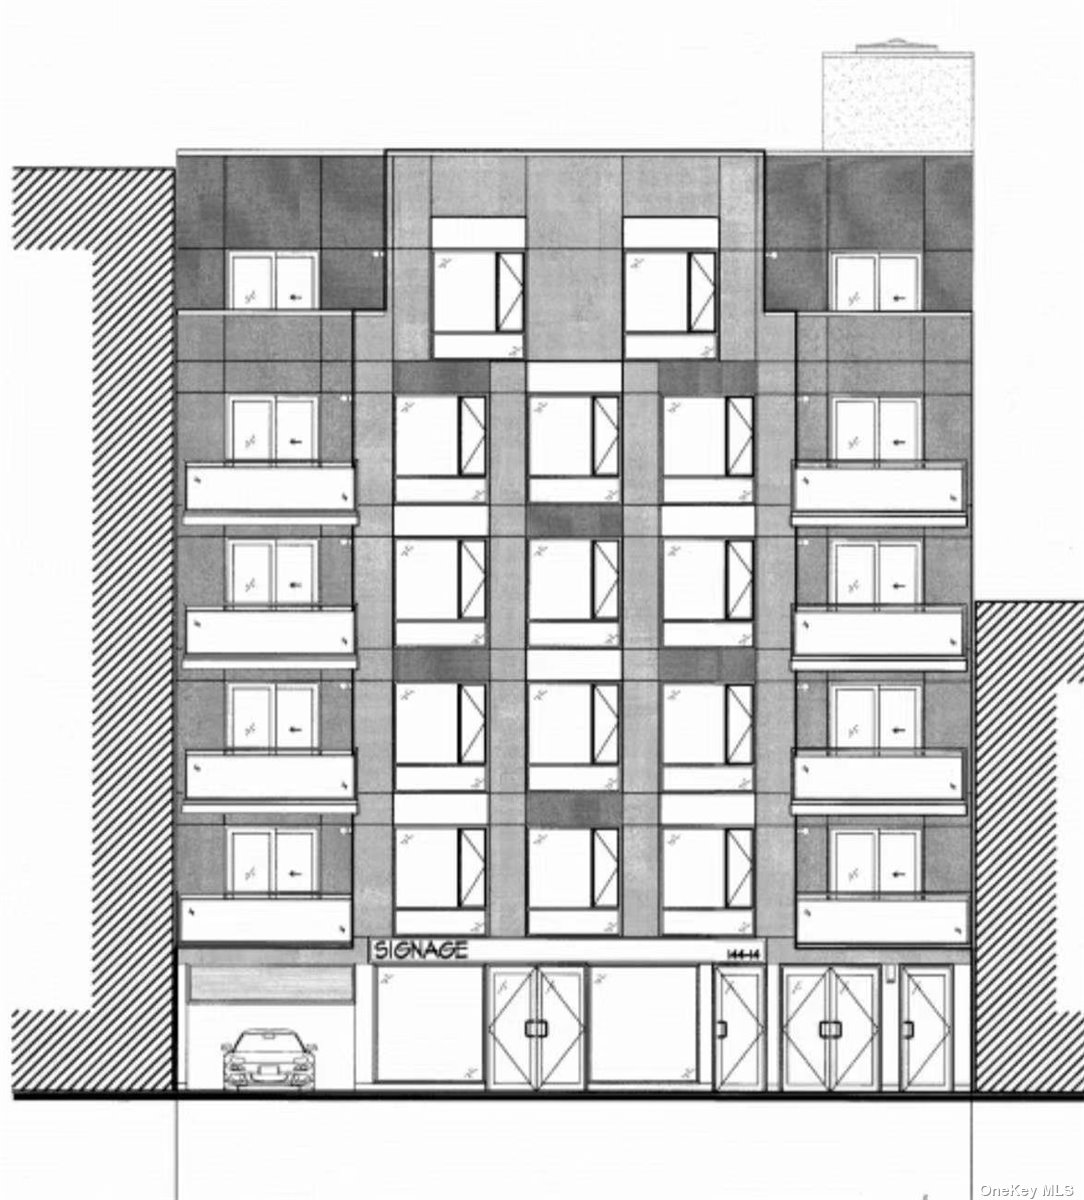 Land in Flushing - 38th Avenue  Queens, NY 11354